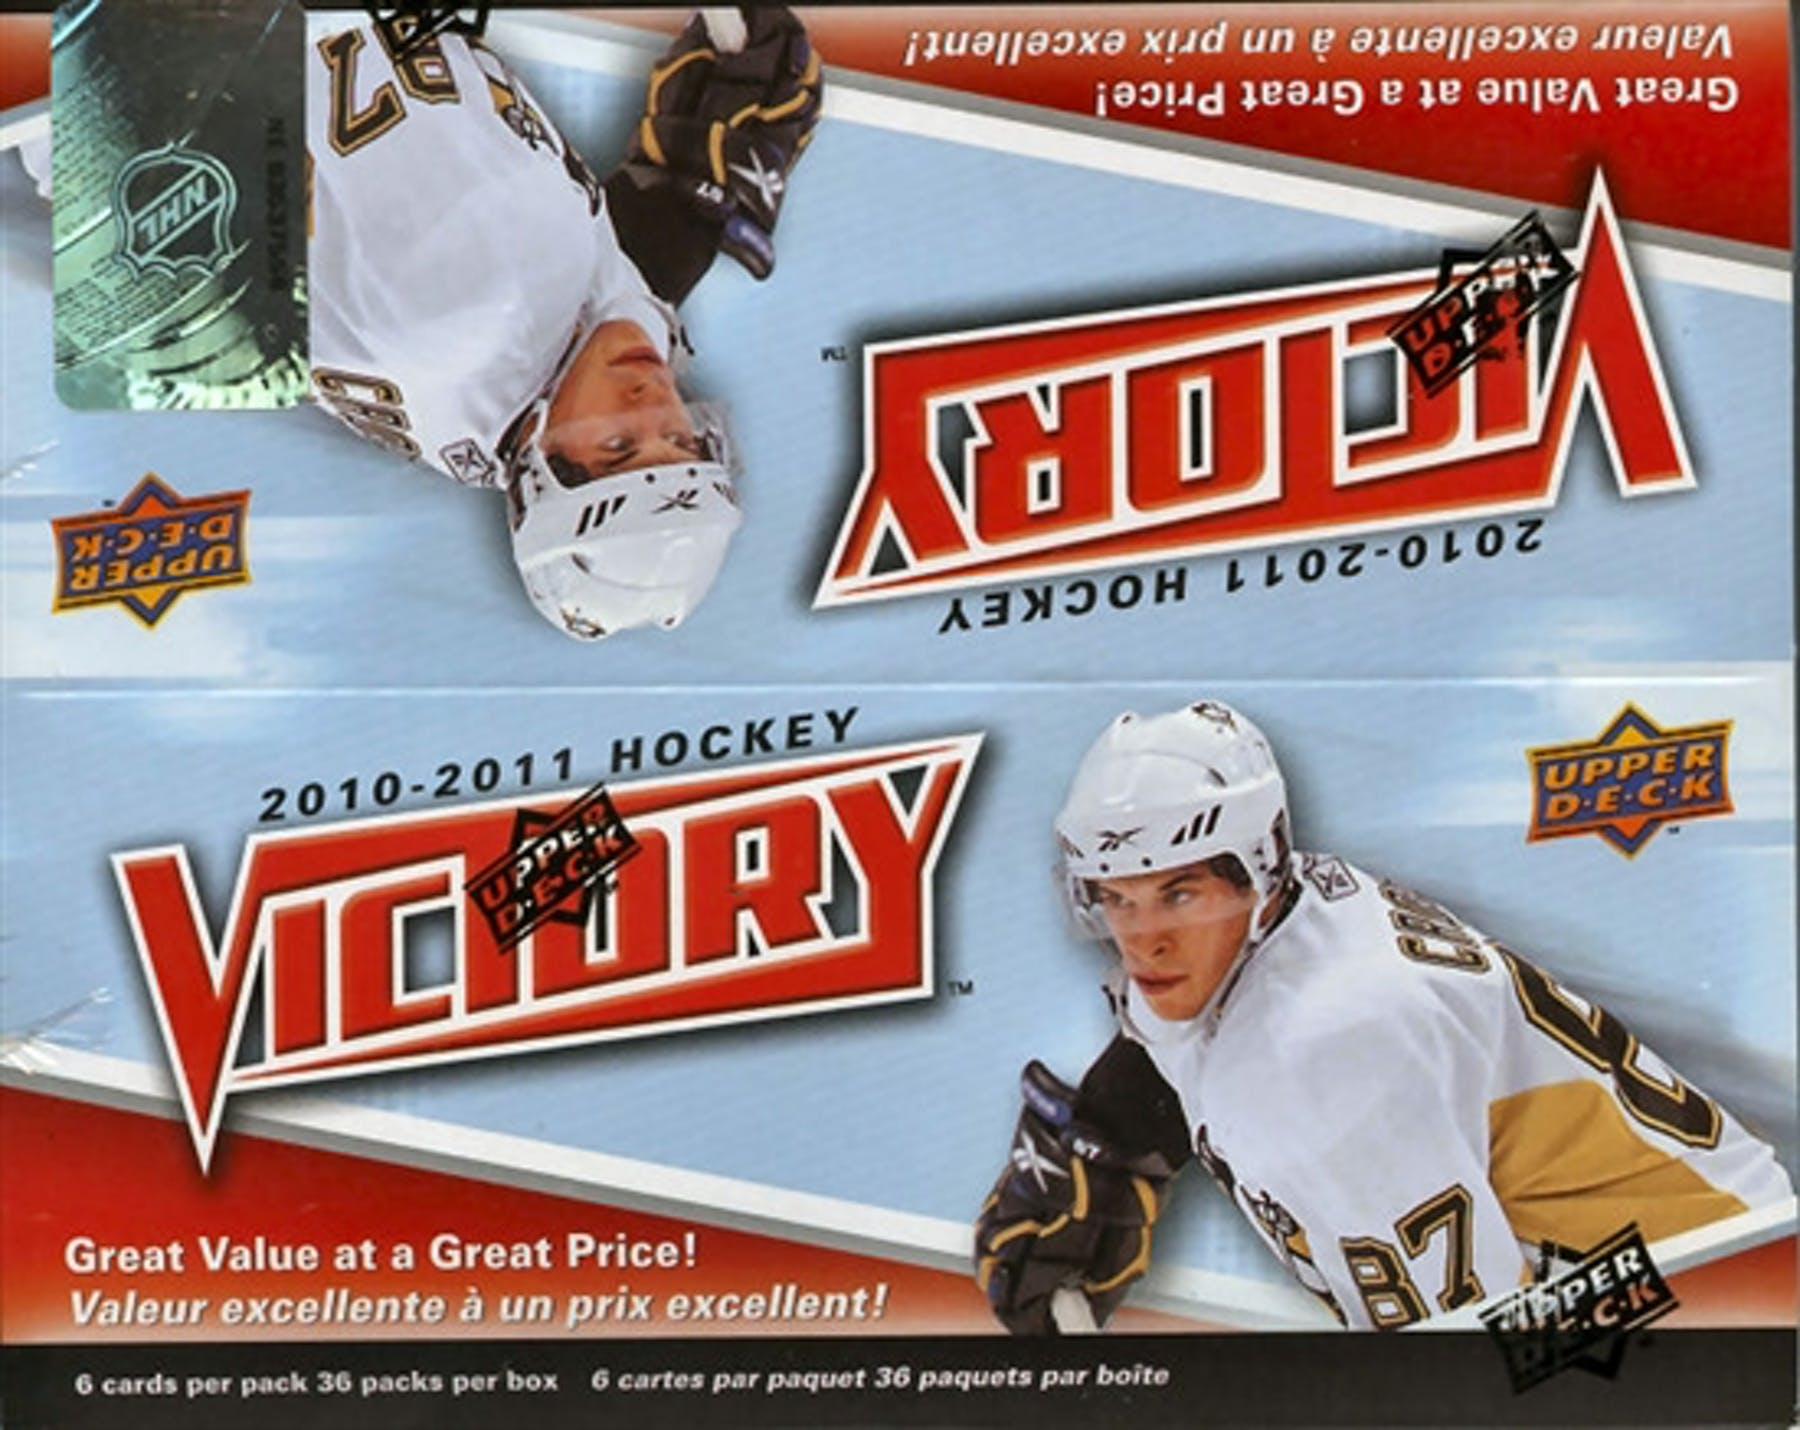 2010-11 Upper Deck Victory Hockey Hobby Box